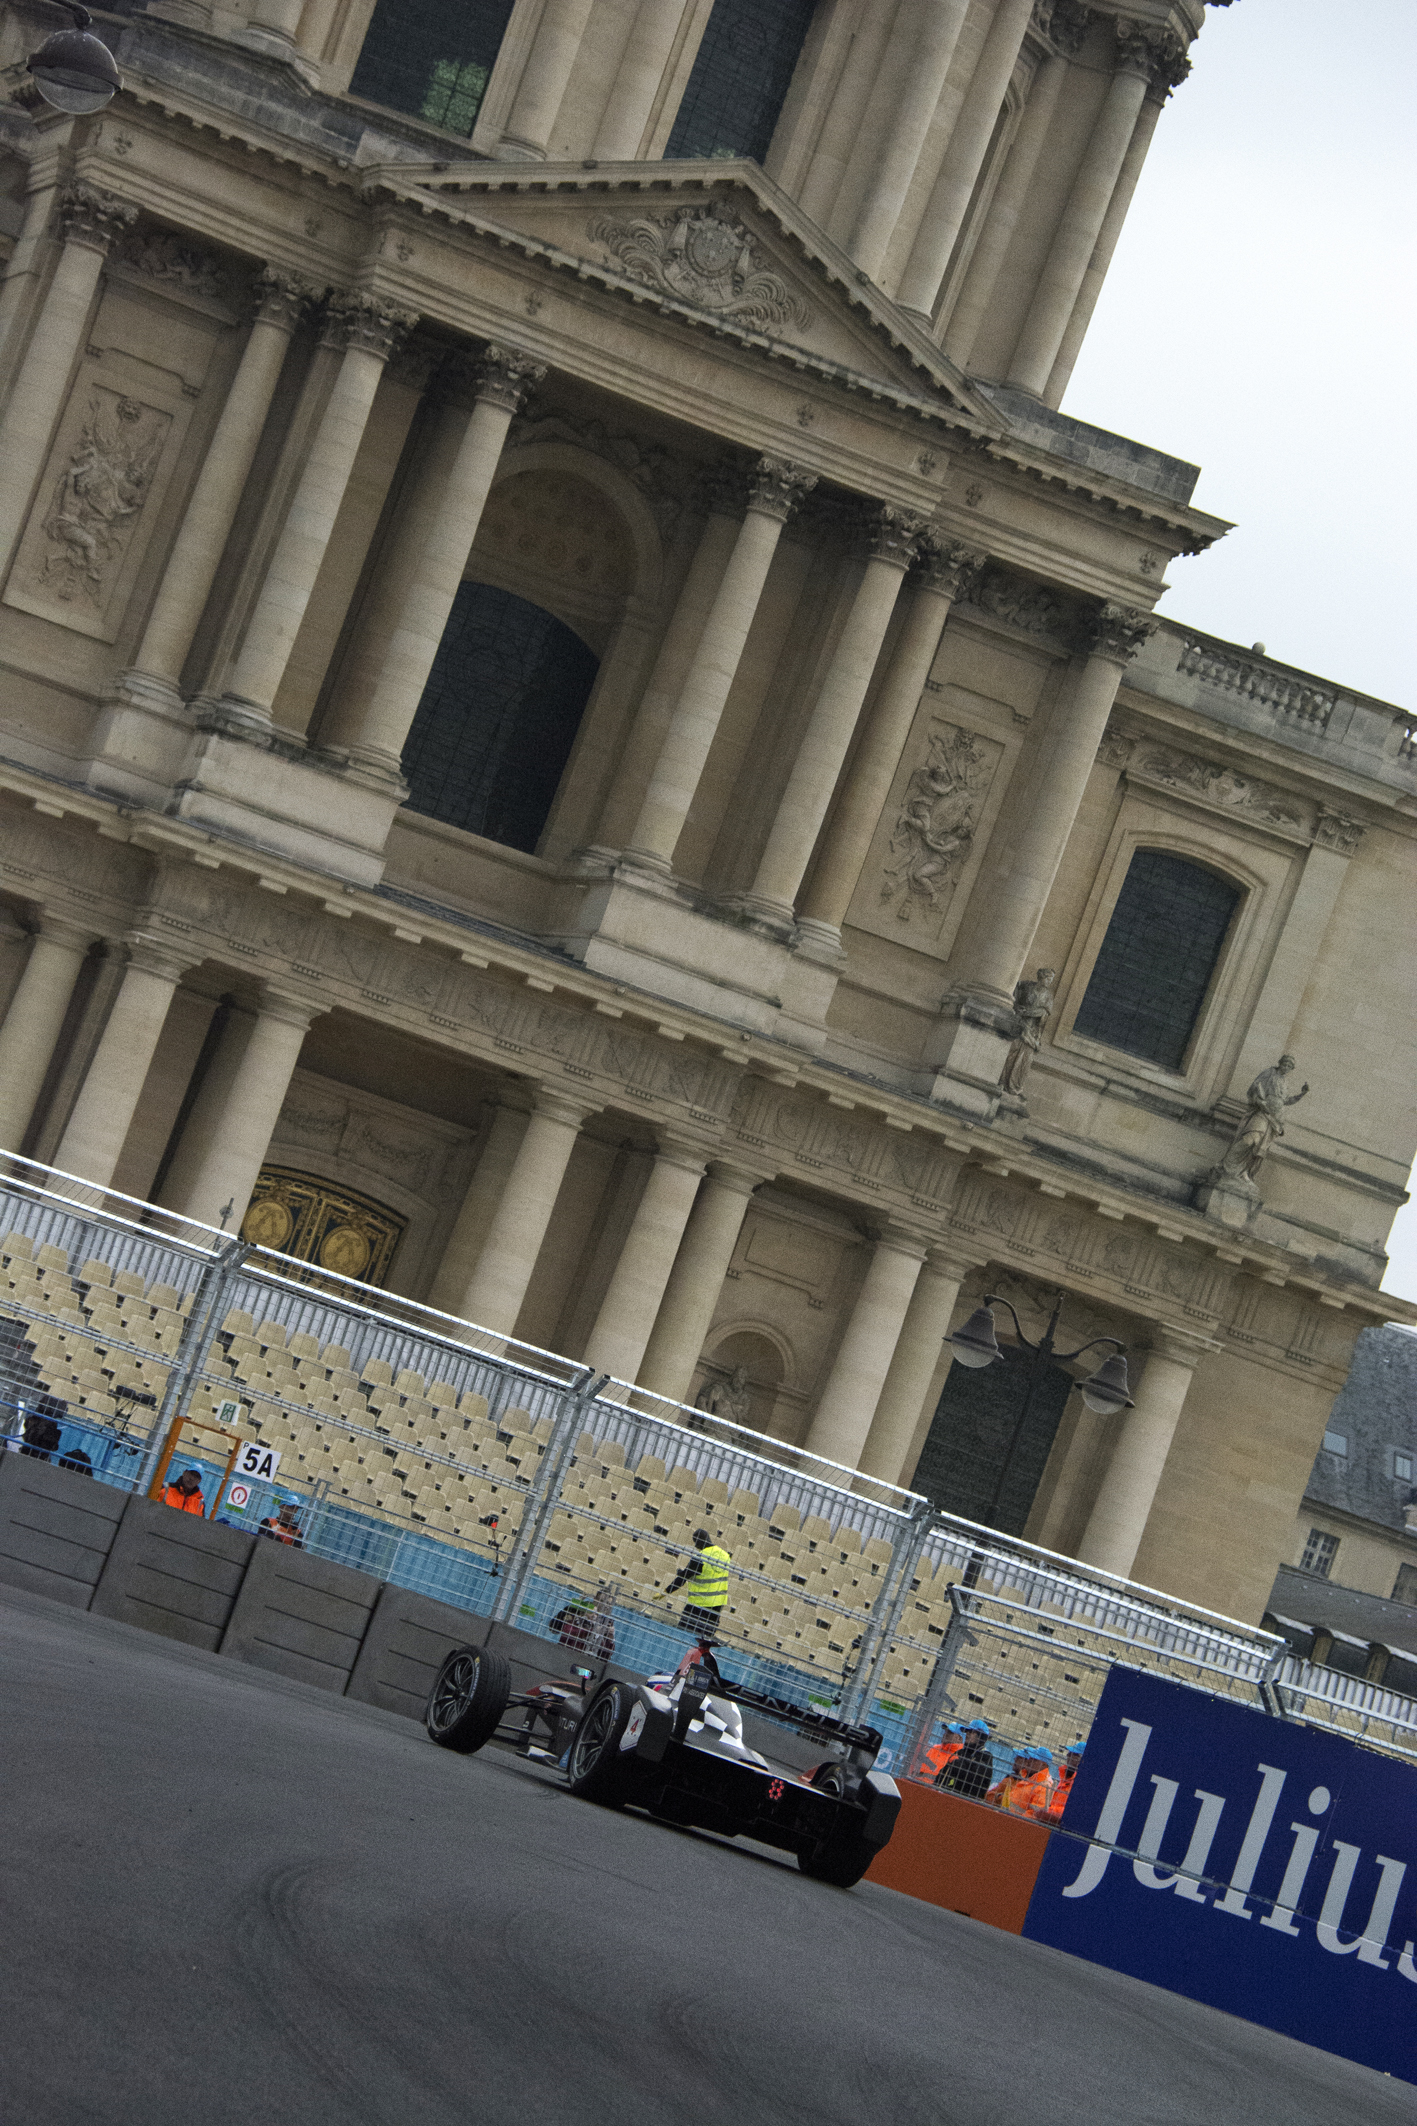 Paris ePrix 2016